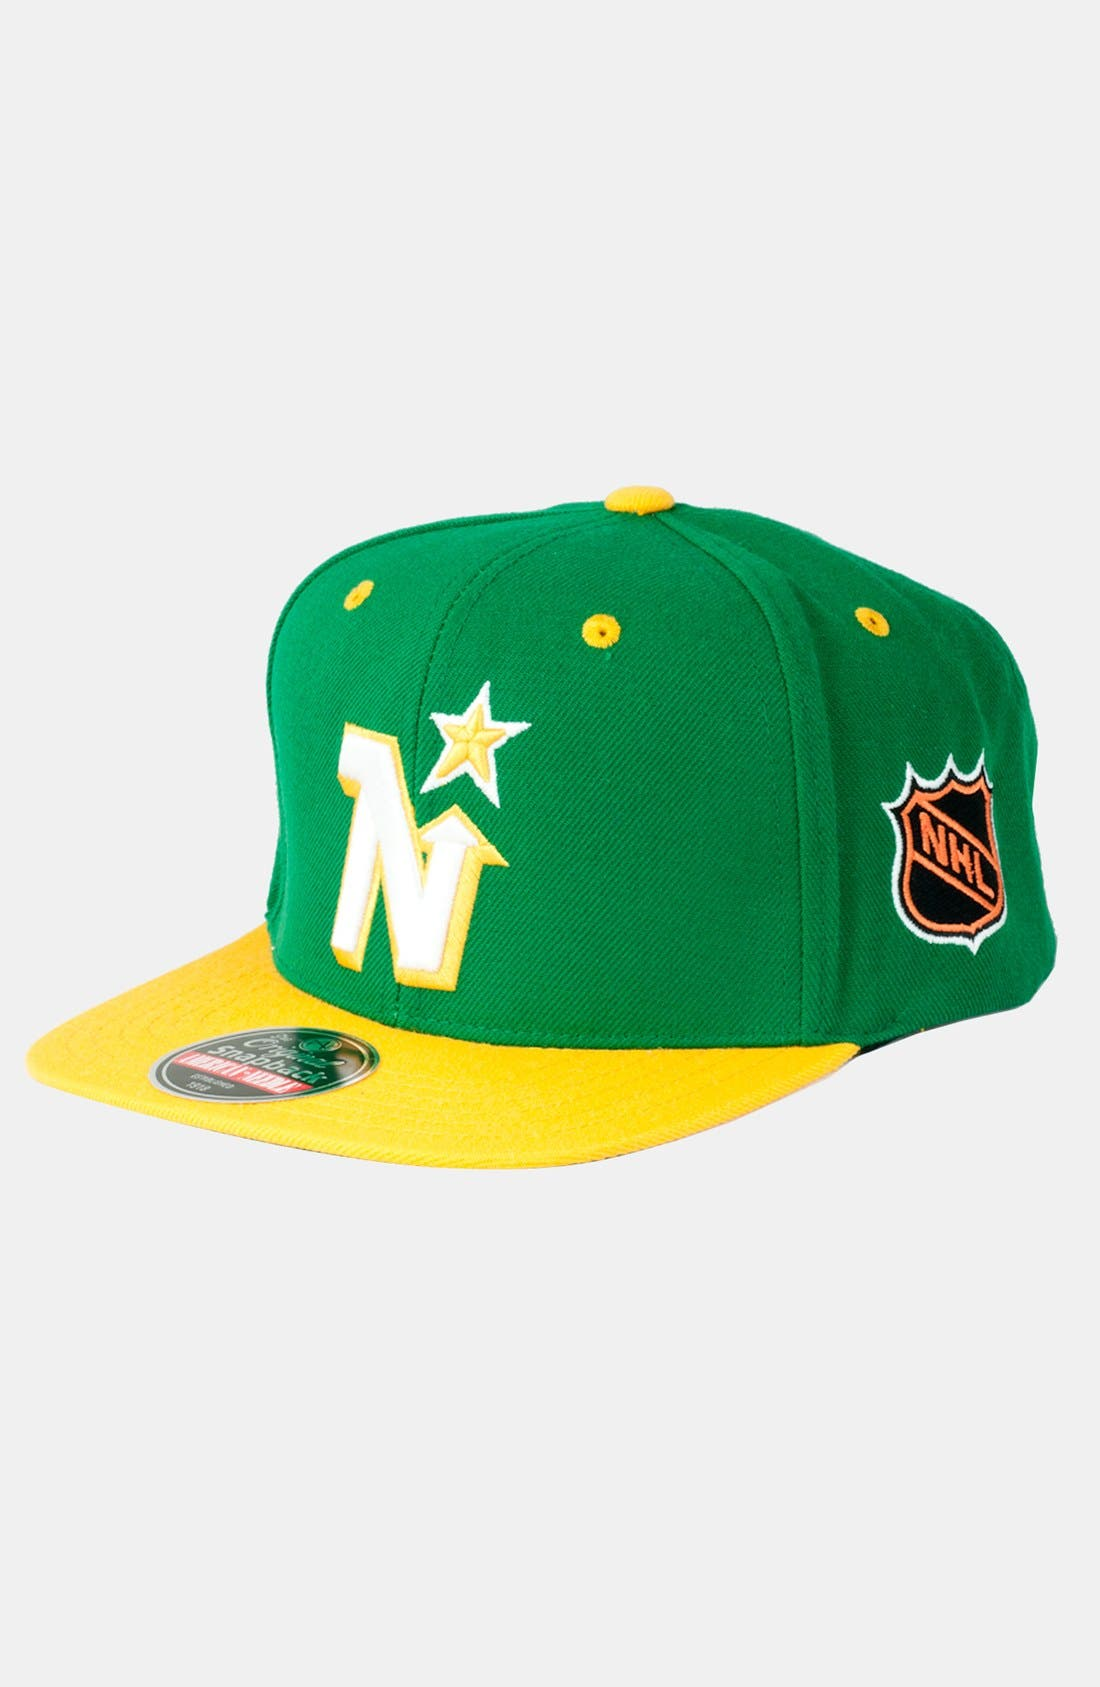 Main Image - American Needle 'Minnesota North Stars - Blockhead' Snapback Hockey Cap